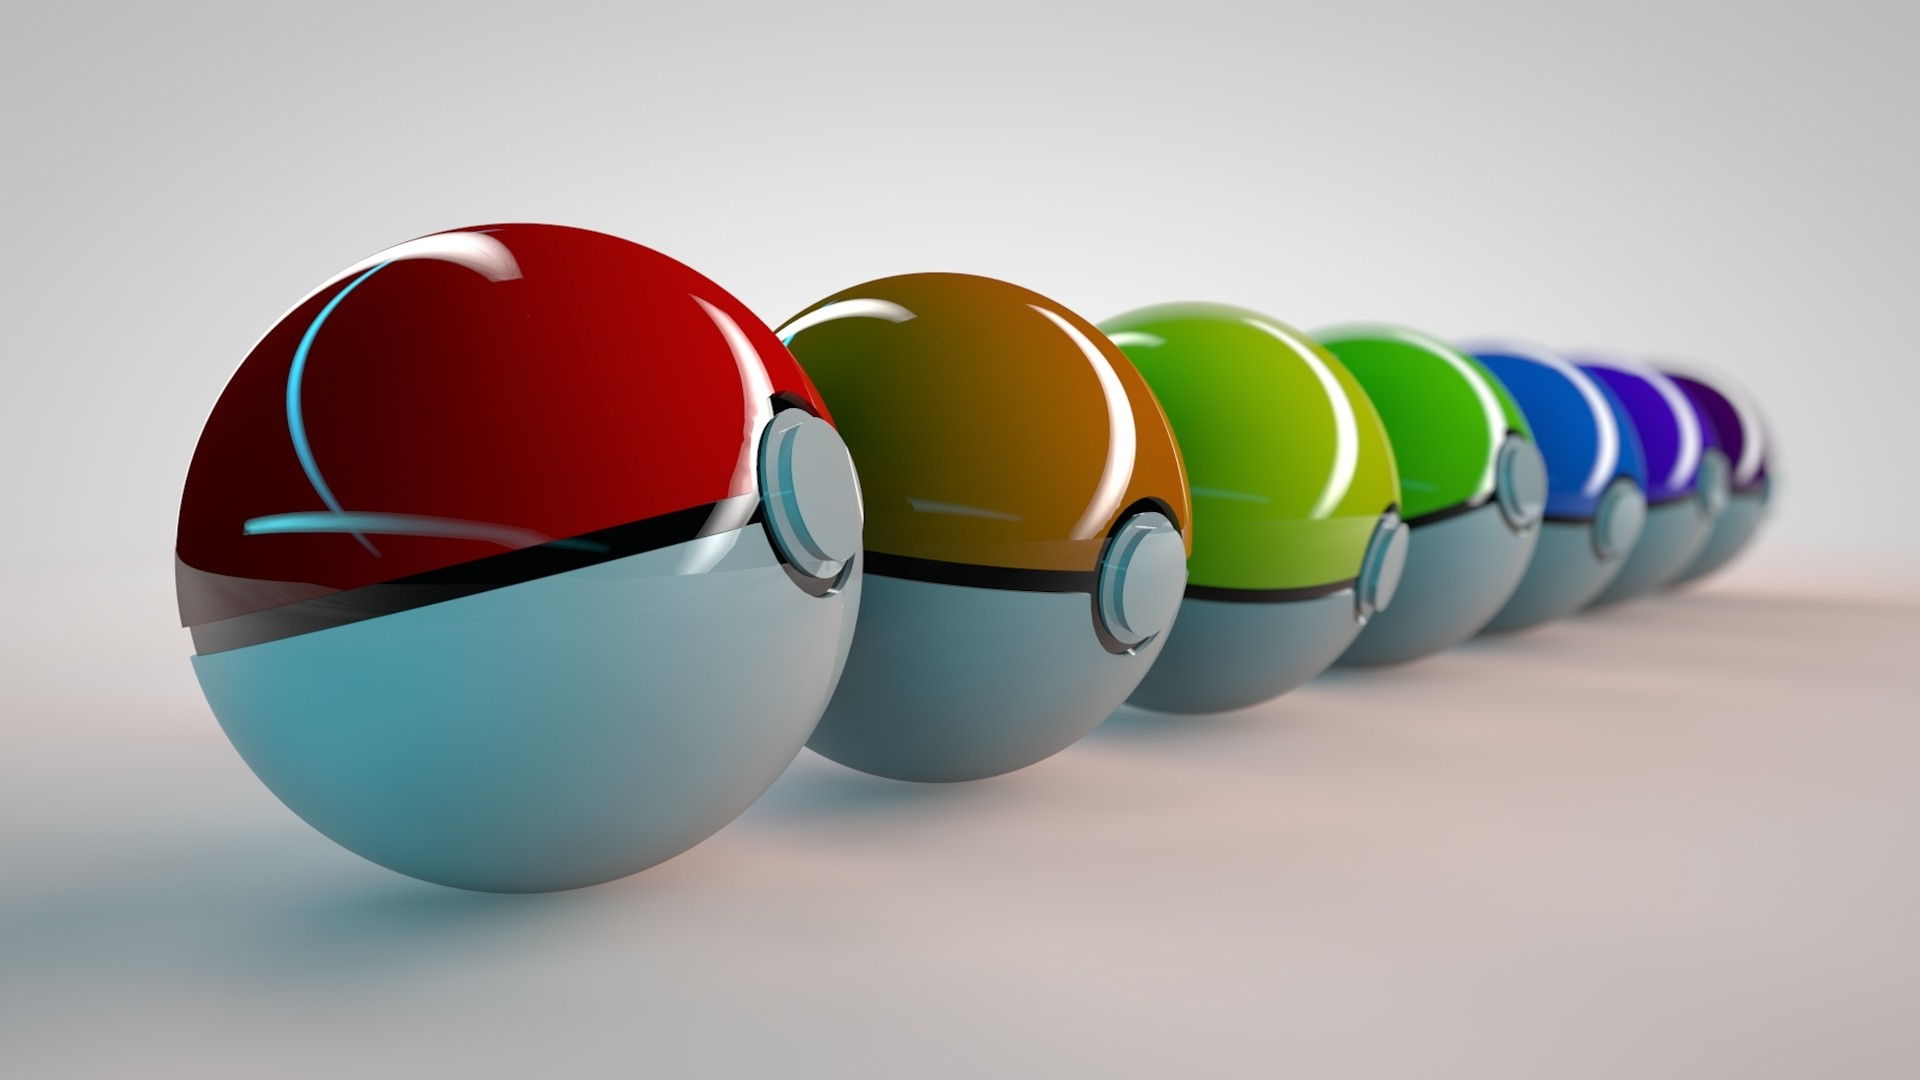 Pokemon Ball Pokeball Wallpapers HD Wallpaper Pokemon Ball Pokeball 1920x1080